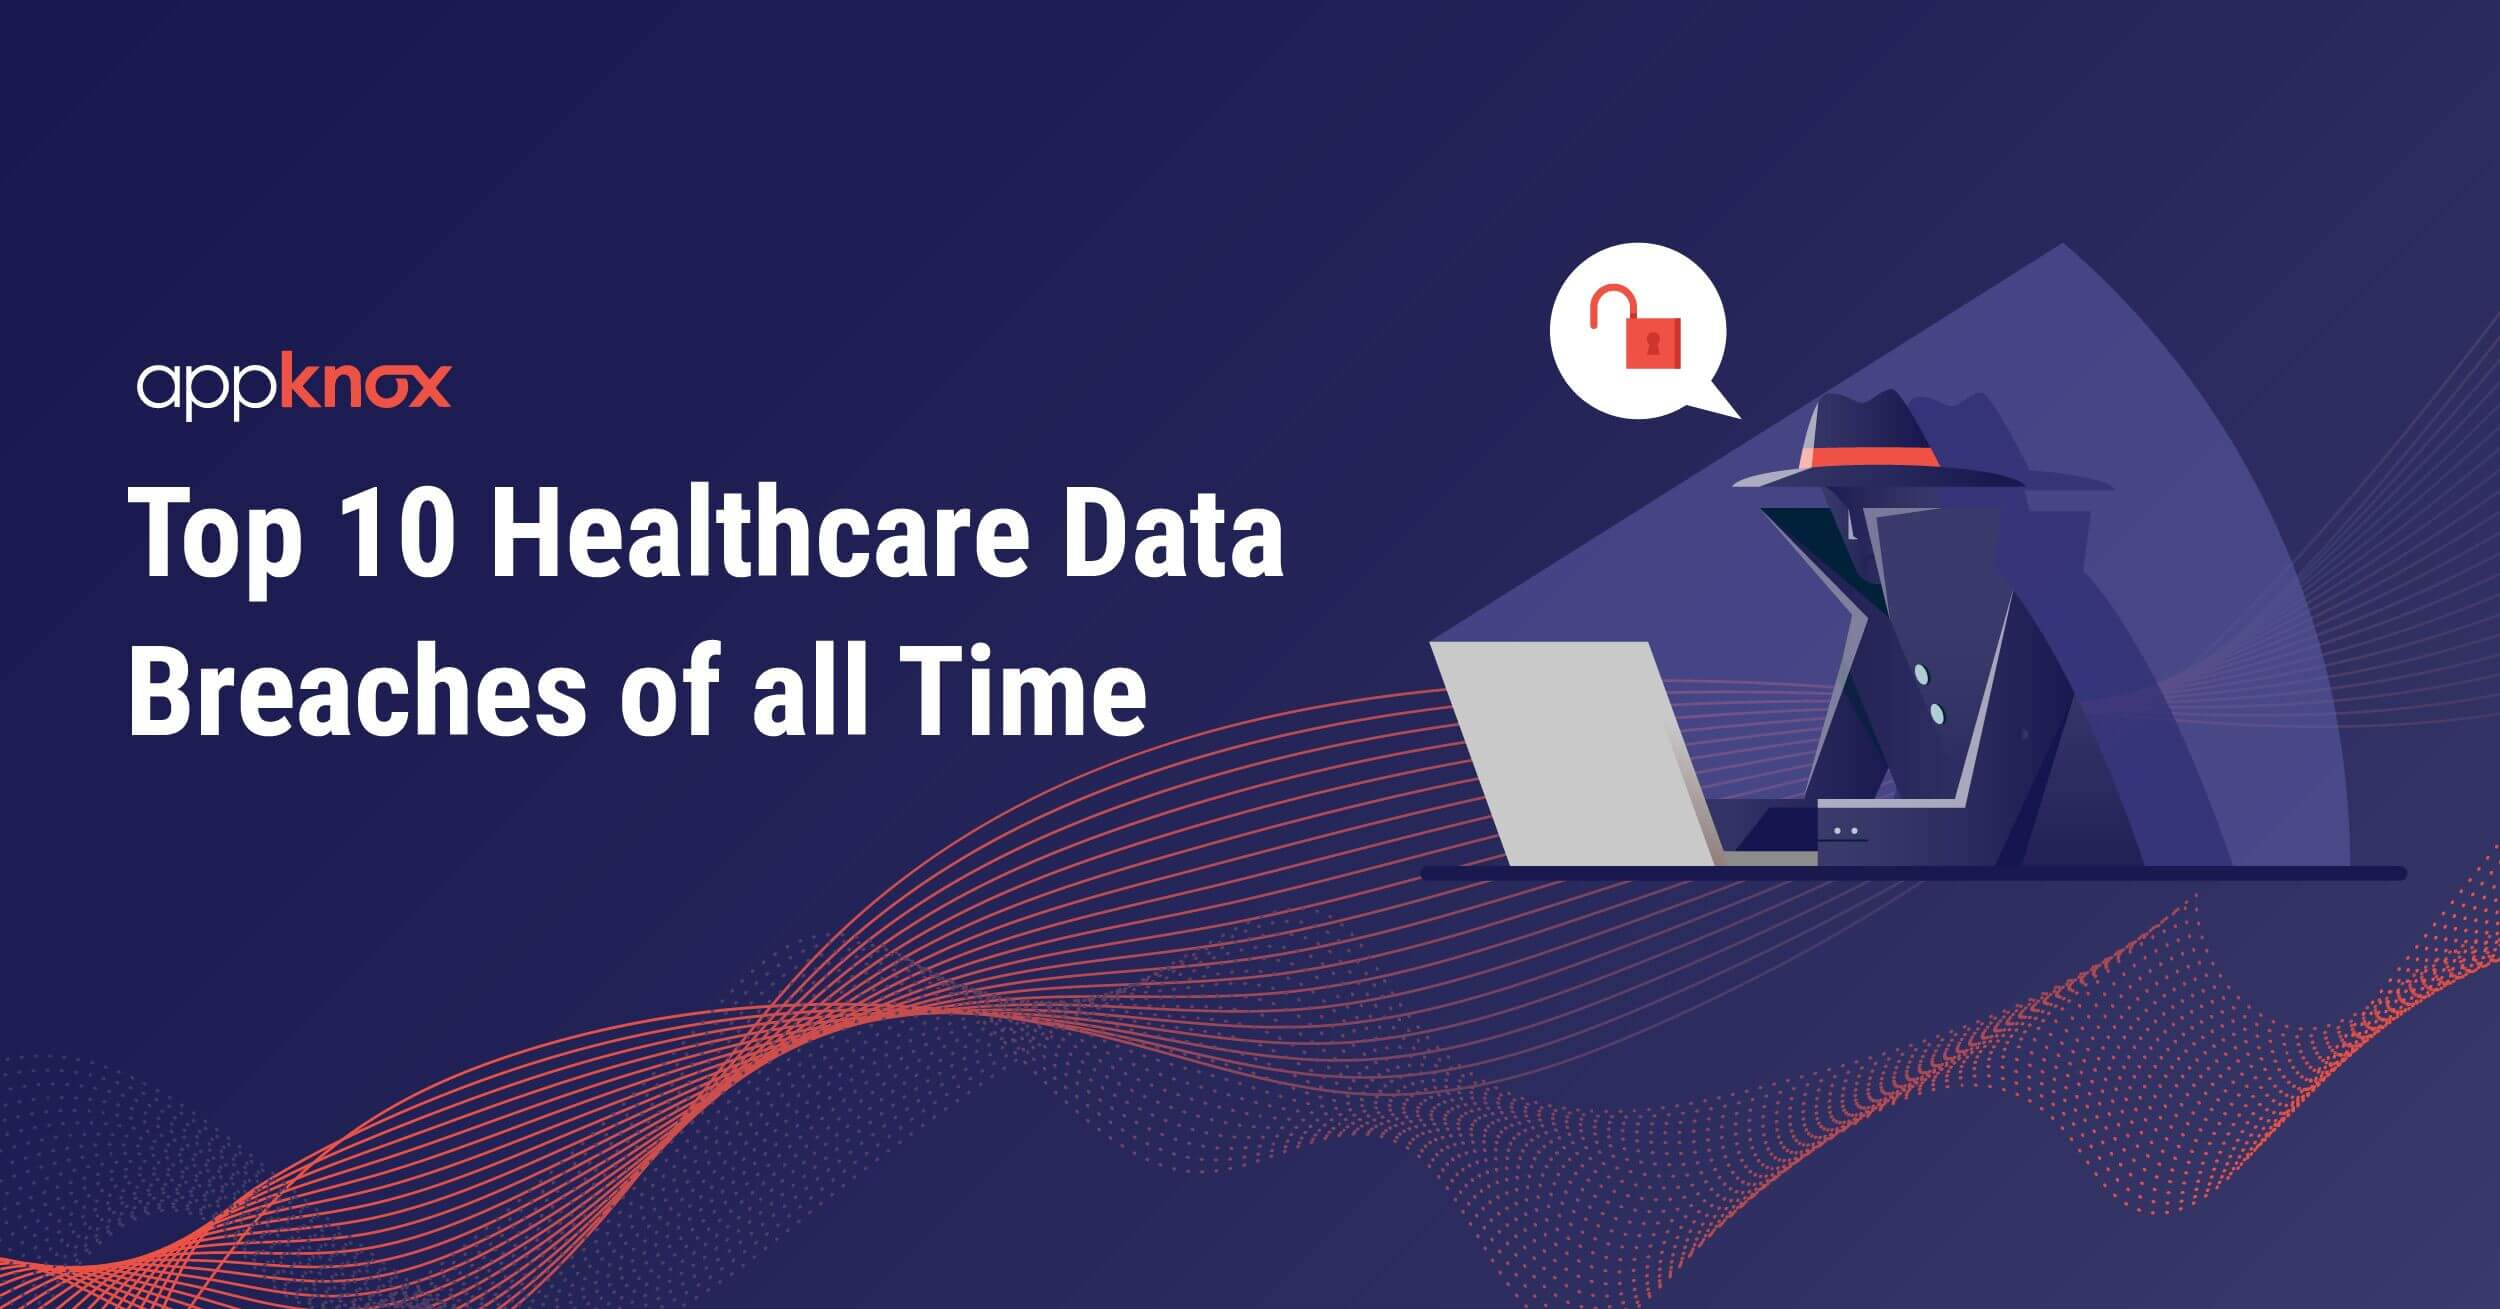 Top 10 Healthcare Data Breaches of All Time